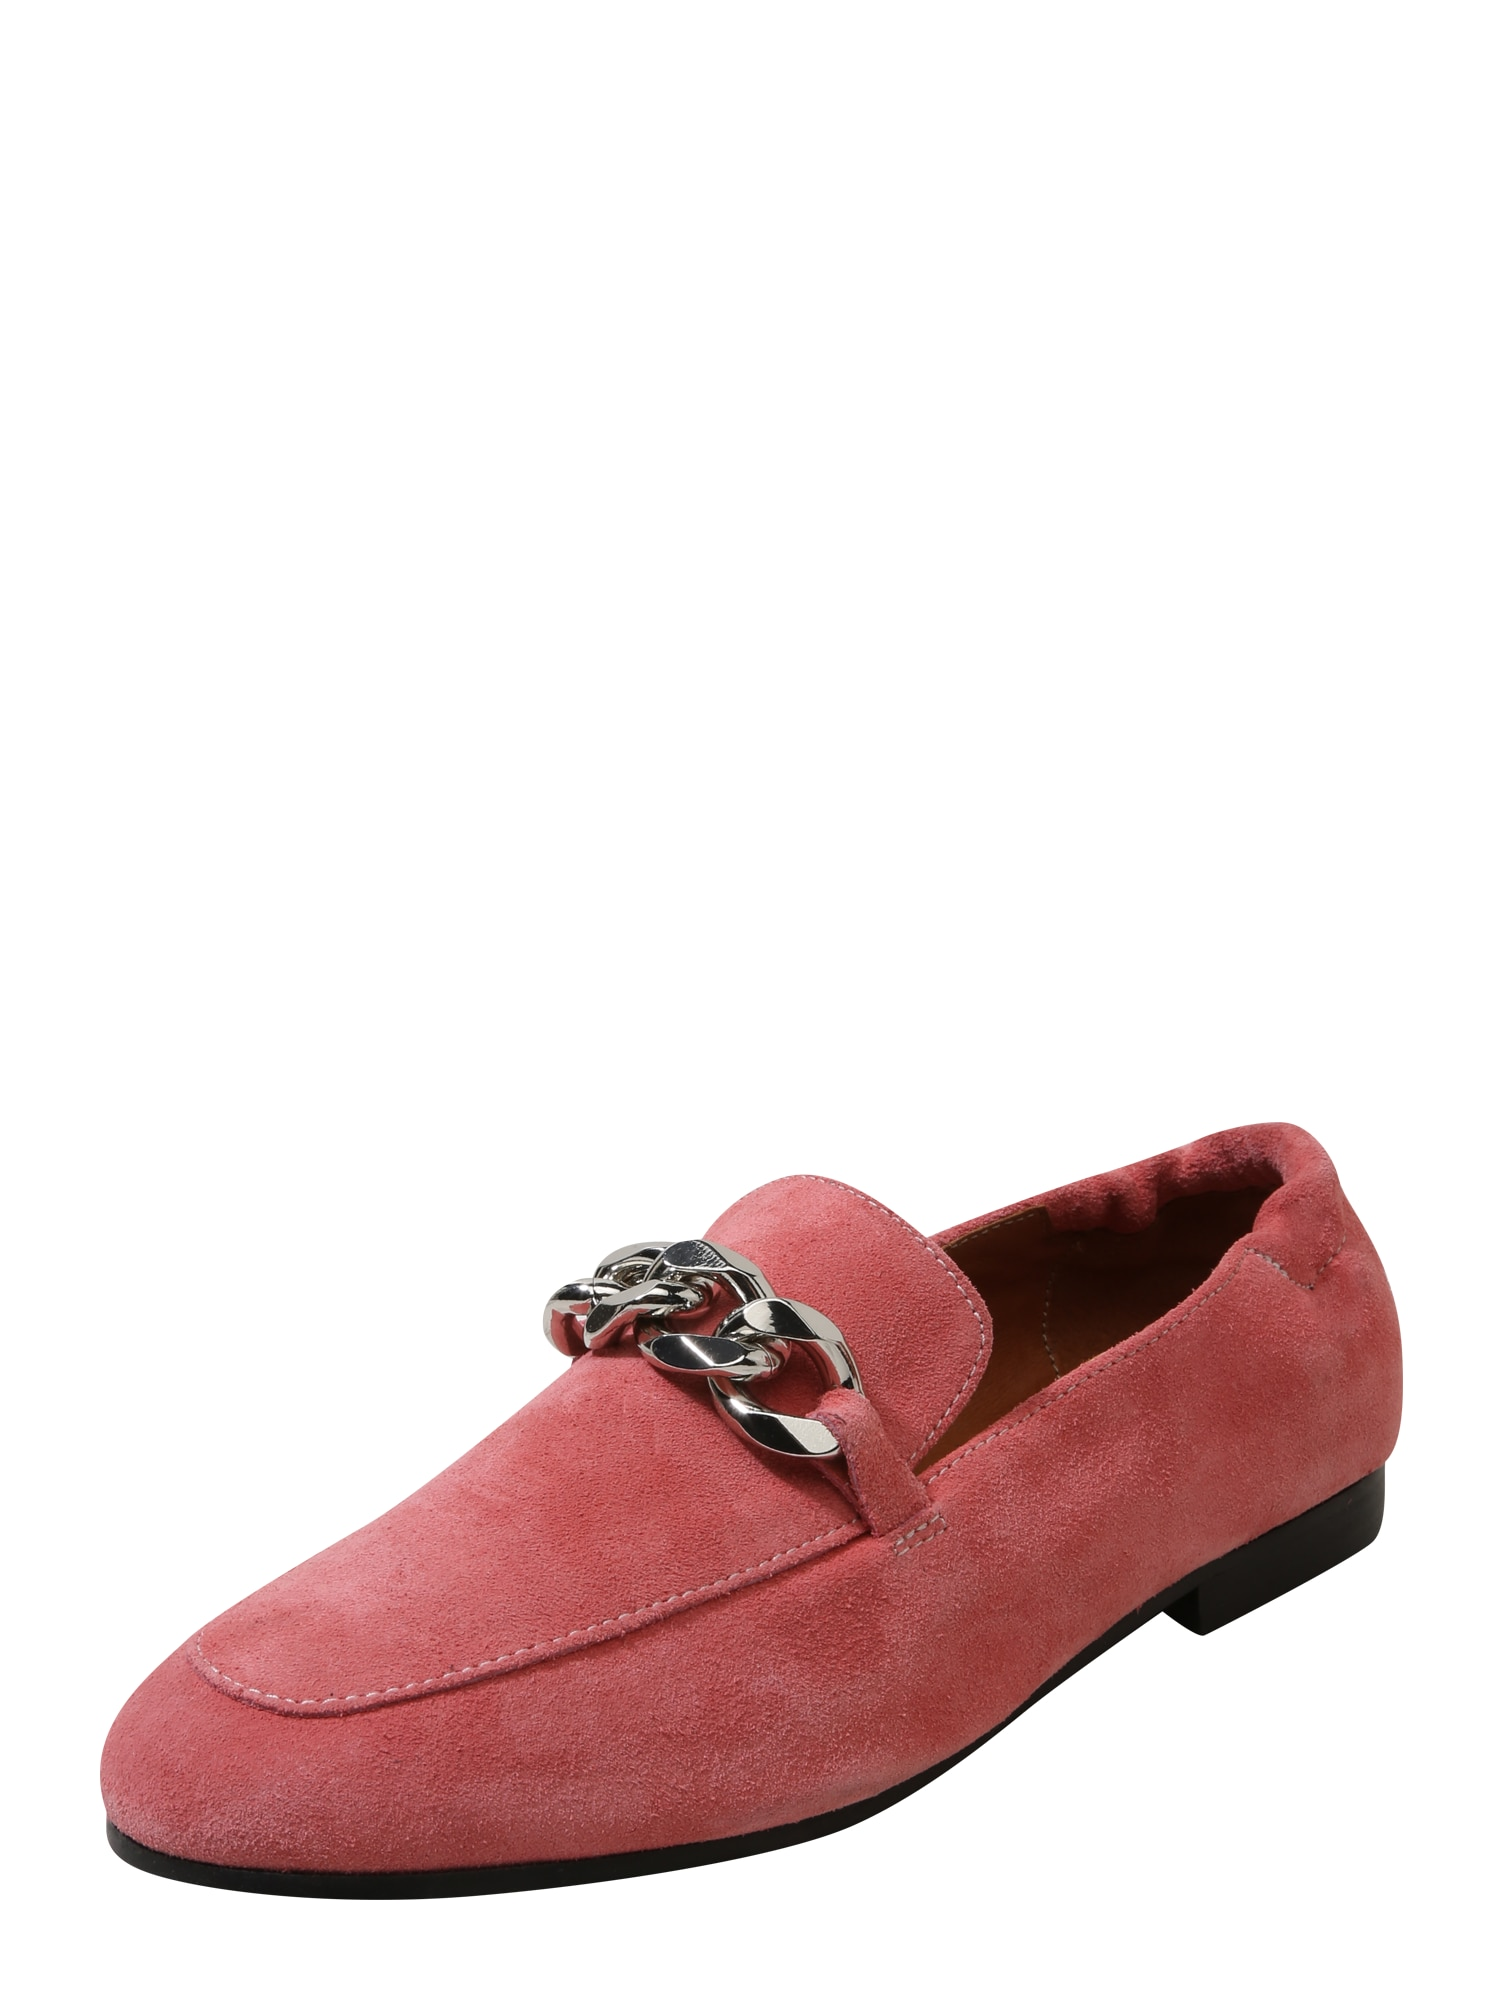 Slipper Zeynep pink ABOUT YOU